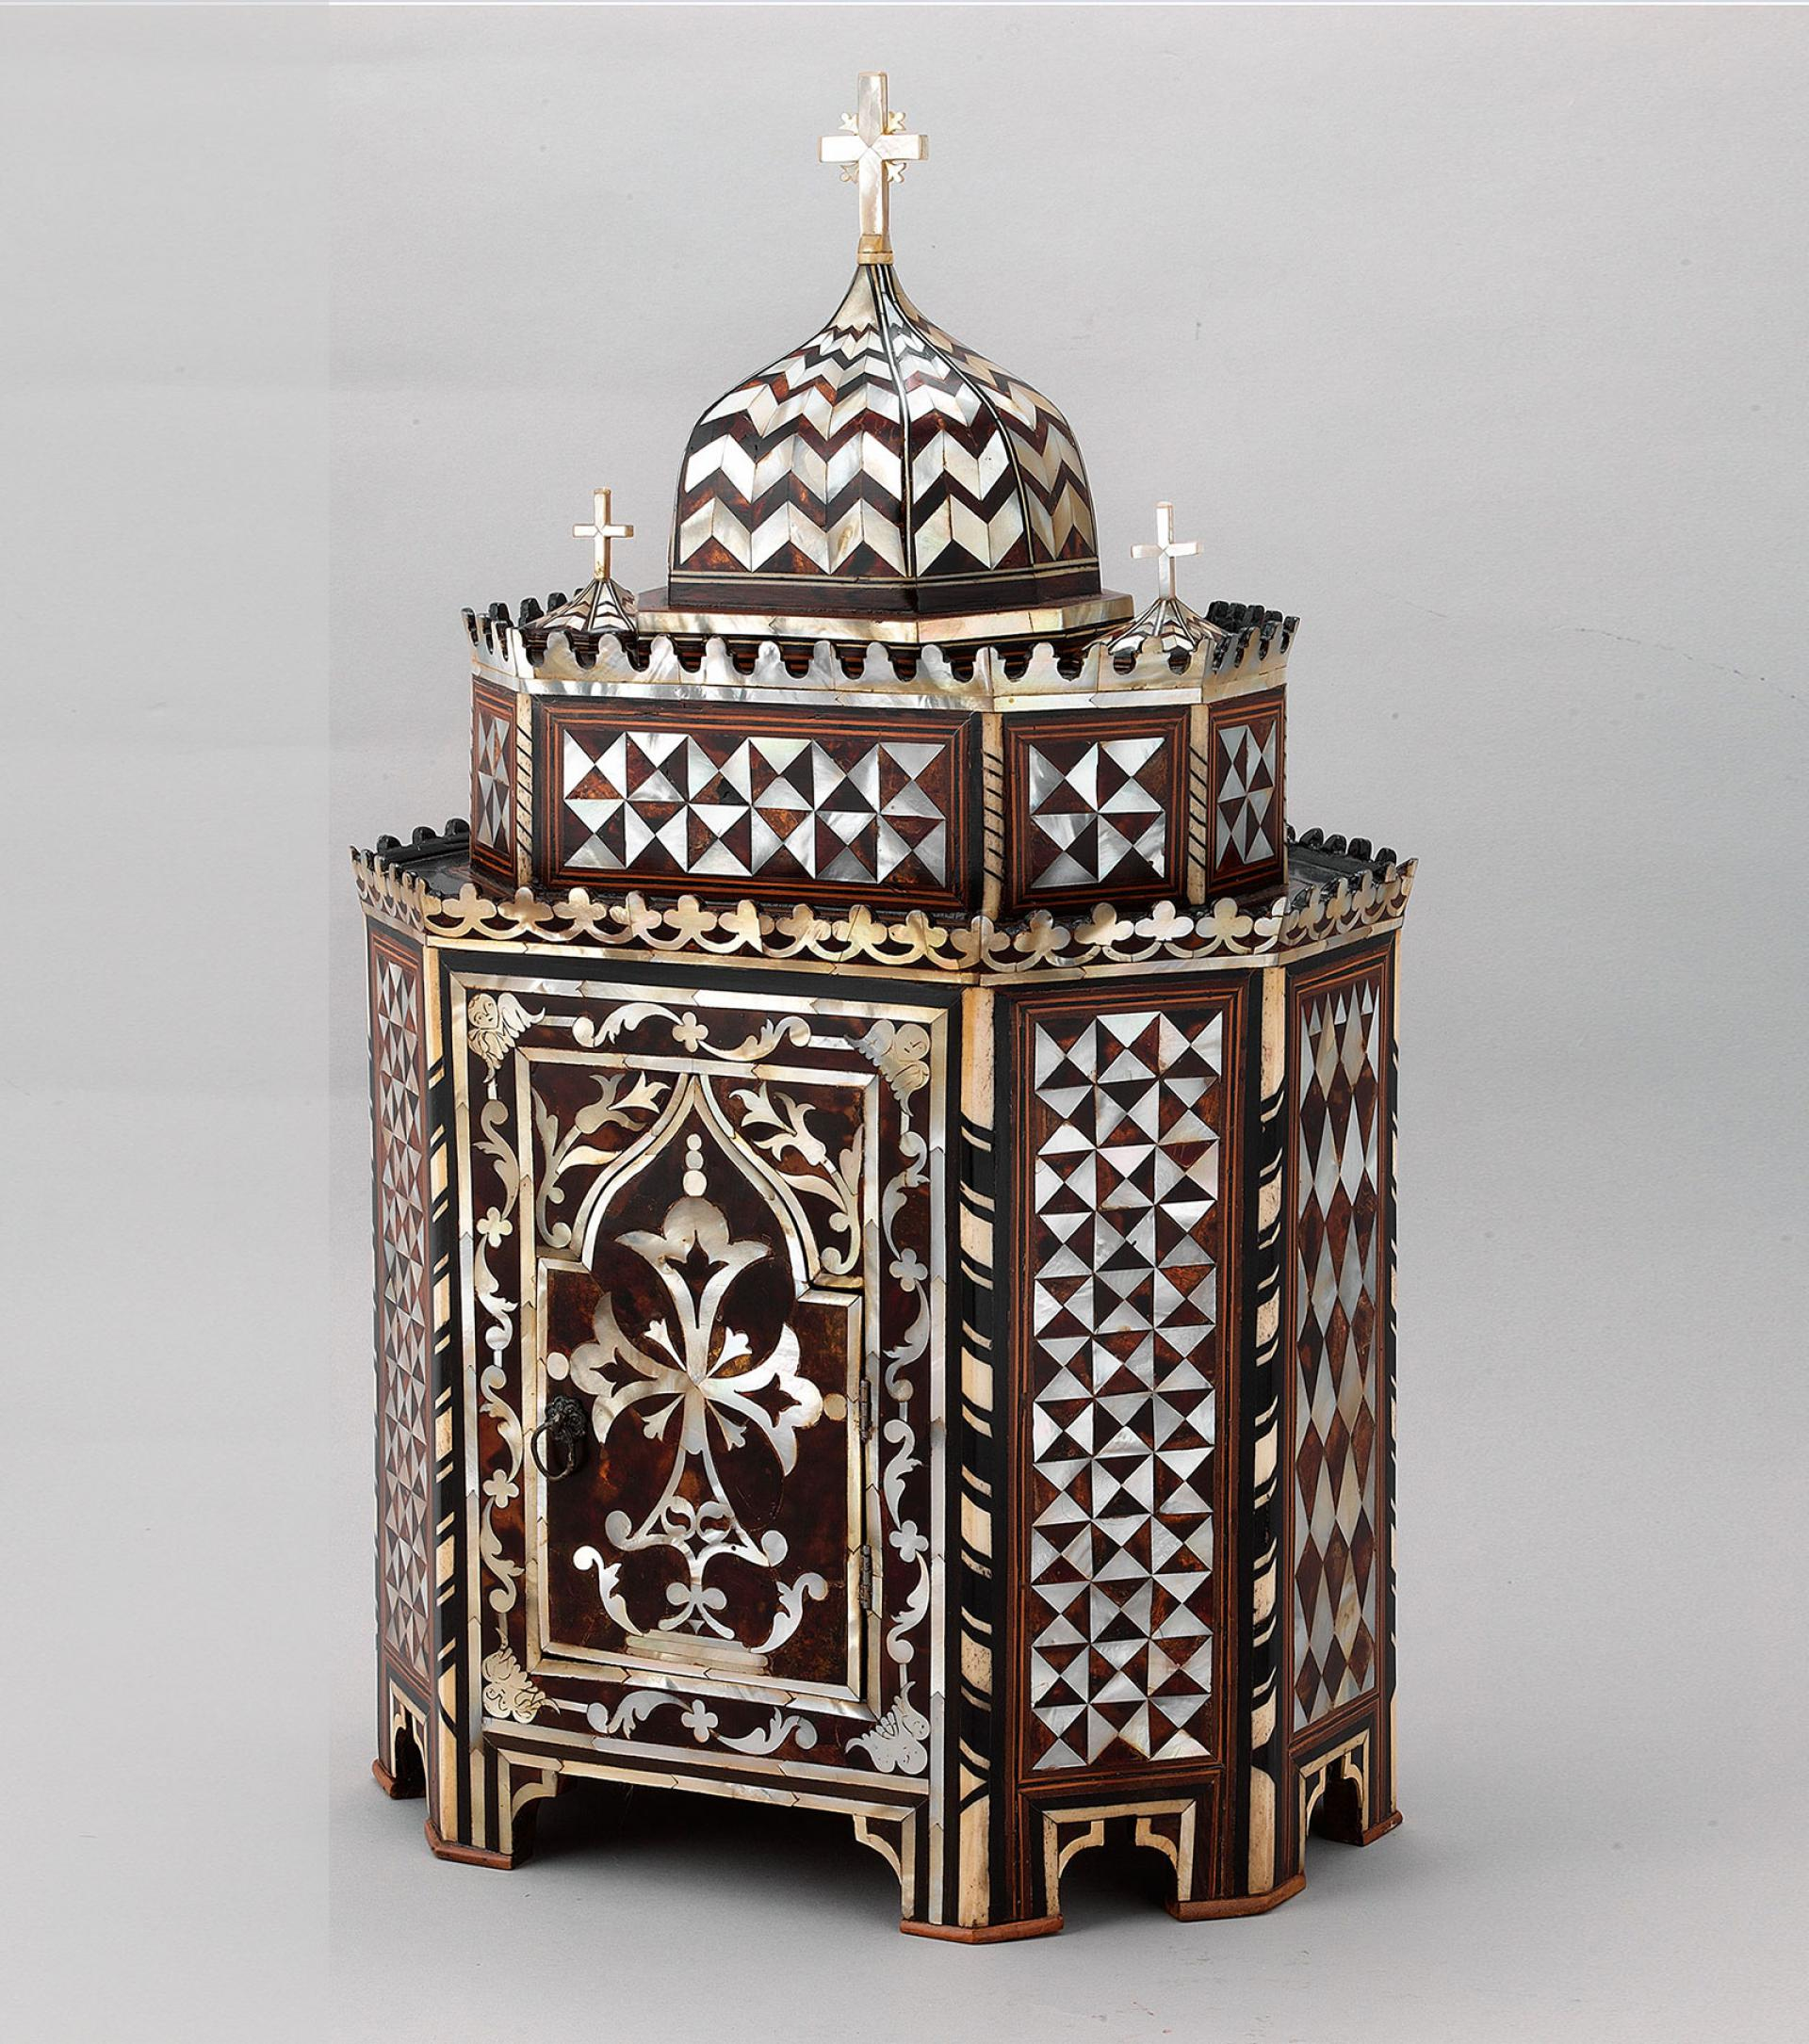 SHM15645 - ArtophorionWood - mother of pearl - tortoise shell Ottoman, 19th centuryIstanbul